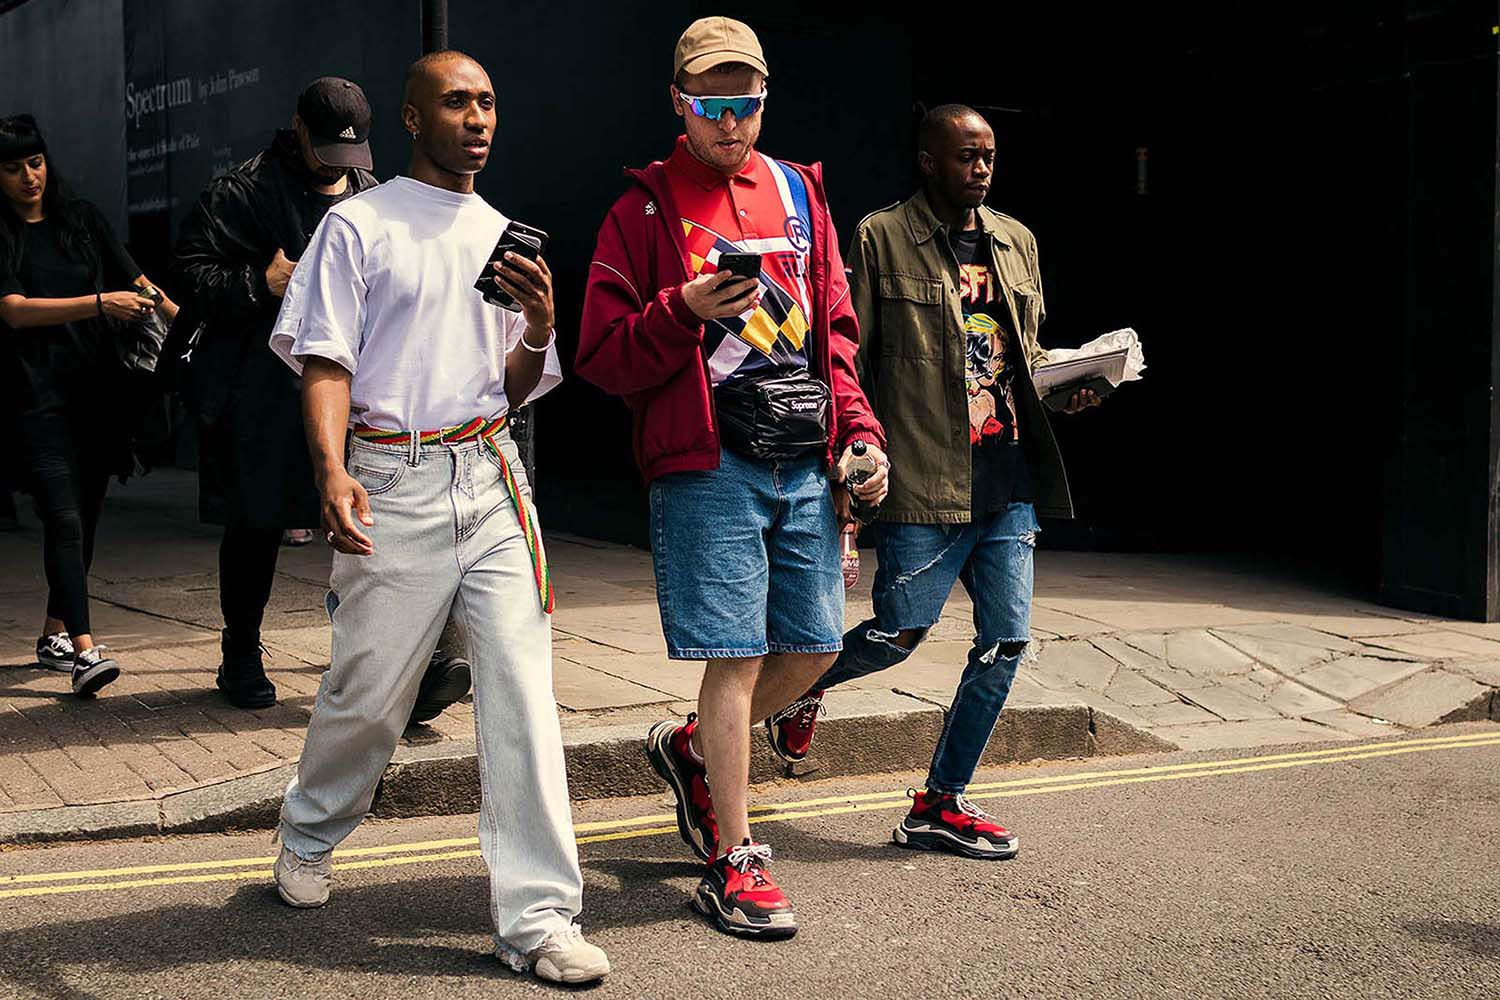 Group of stylish men (Adam James) photograohed at London Fashion Week Men's (LFWM Street Style by Olajide (JJ) Smith (Spotted By Mr. Smith for Sagaboi. Diversity in Street Style. London Fashion Week Men's (LFWM Street Style by Olajide (JJ) Smith (Spotted By Mr. Smith for Sagaboi. Diversity in Street Style. Representation in stock imagery.